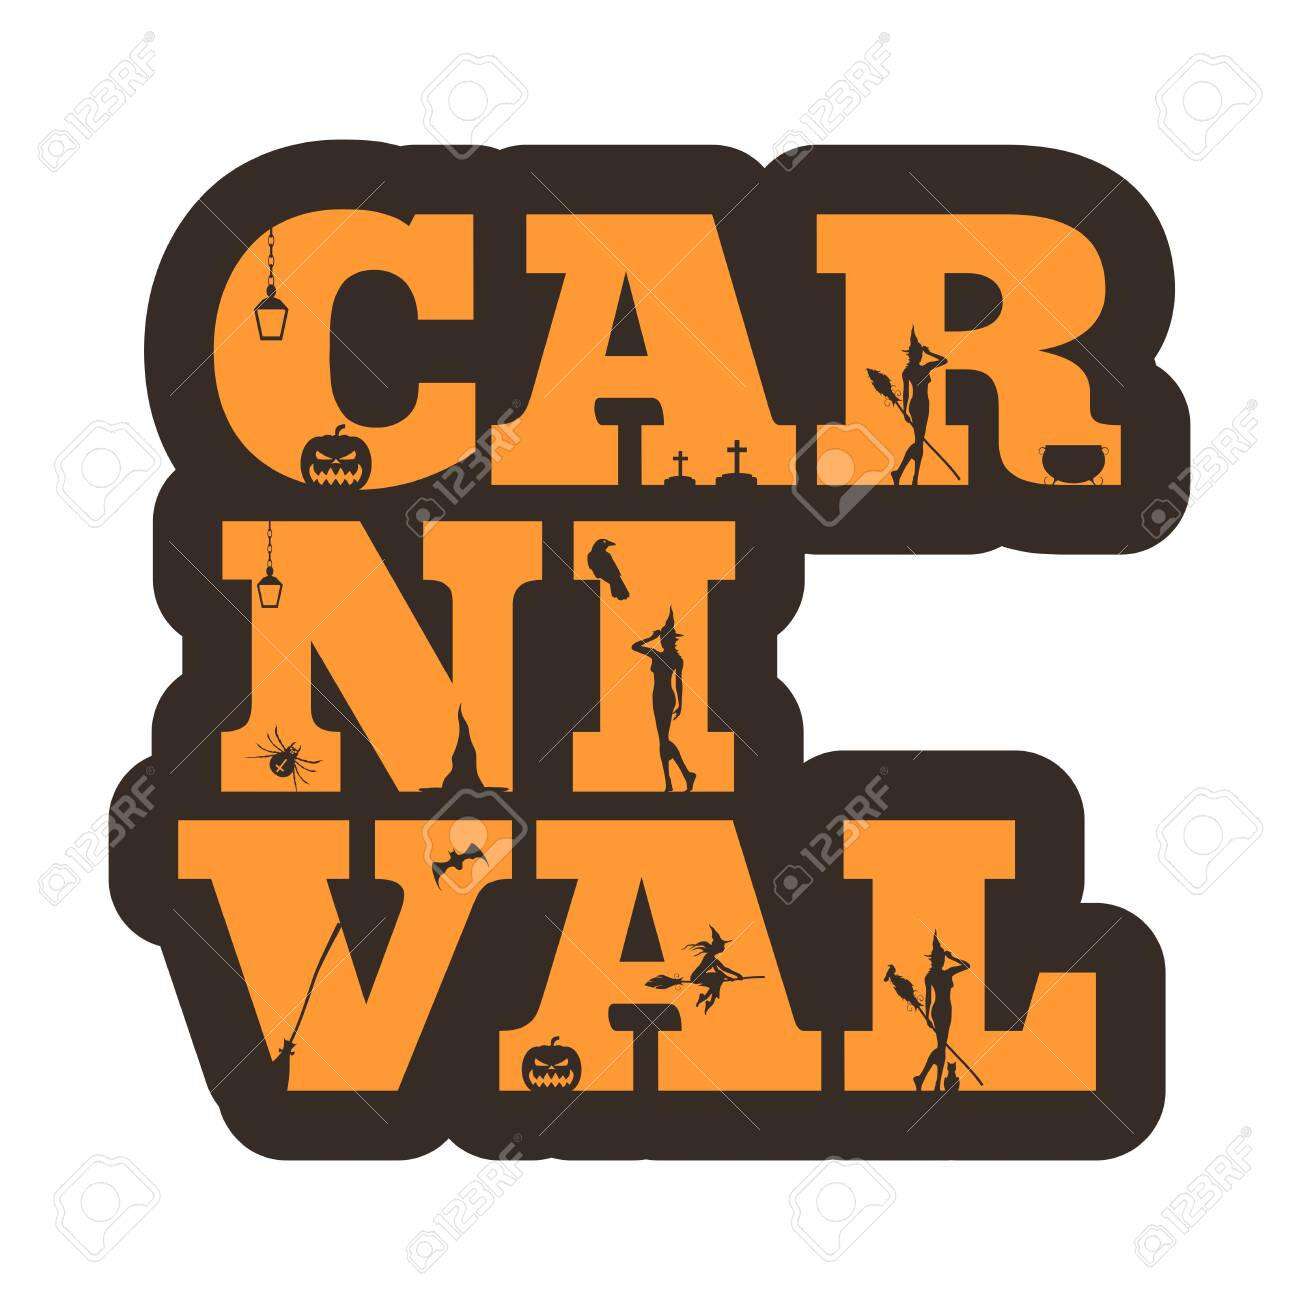 Carnival Halloween Theme.Carnival Word And Silhouettes On Them Halloween Theme Sticker